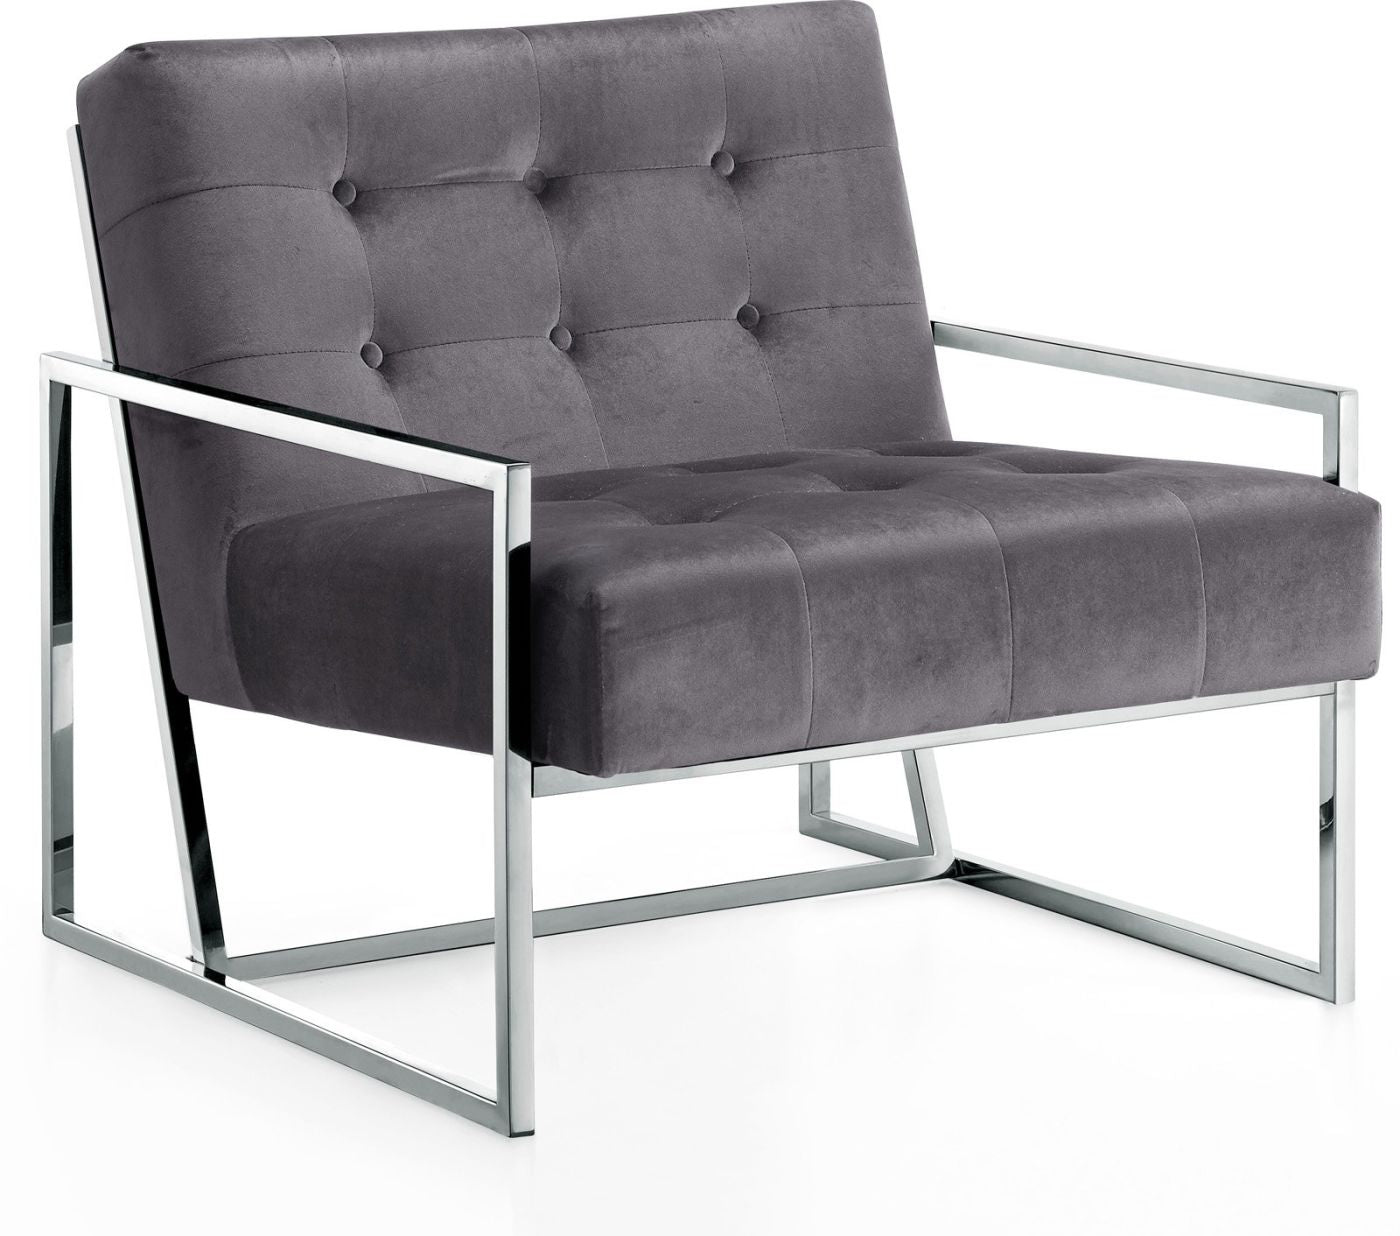 Terrific Buy Meridian 522Grey Alexis Chrome Accent Chair At Contemporary Furniture Warehouse Cjindustries Chair Design For Home Cjindustriesco